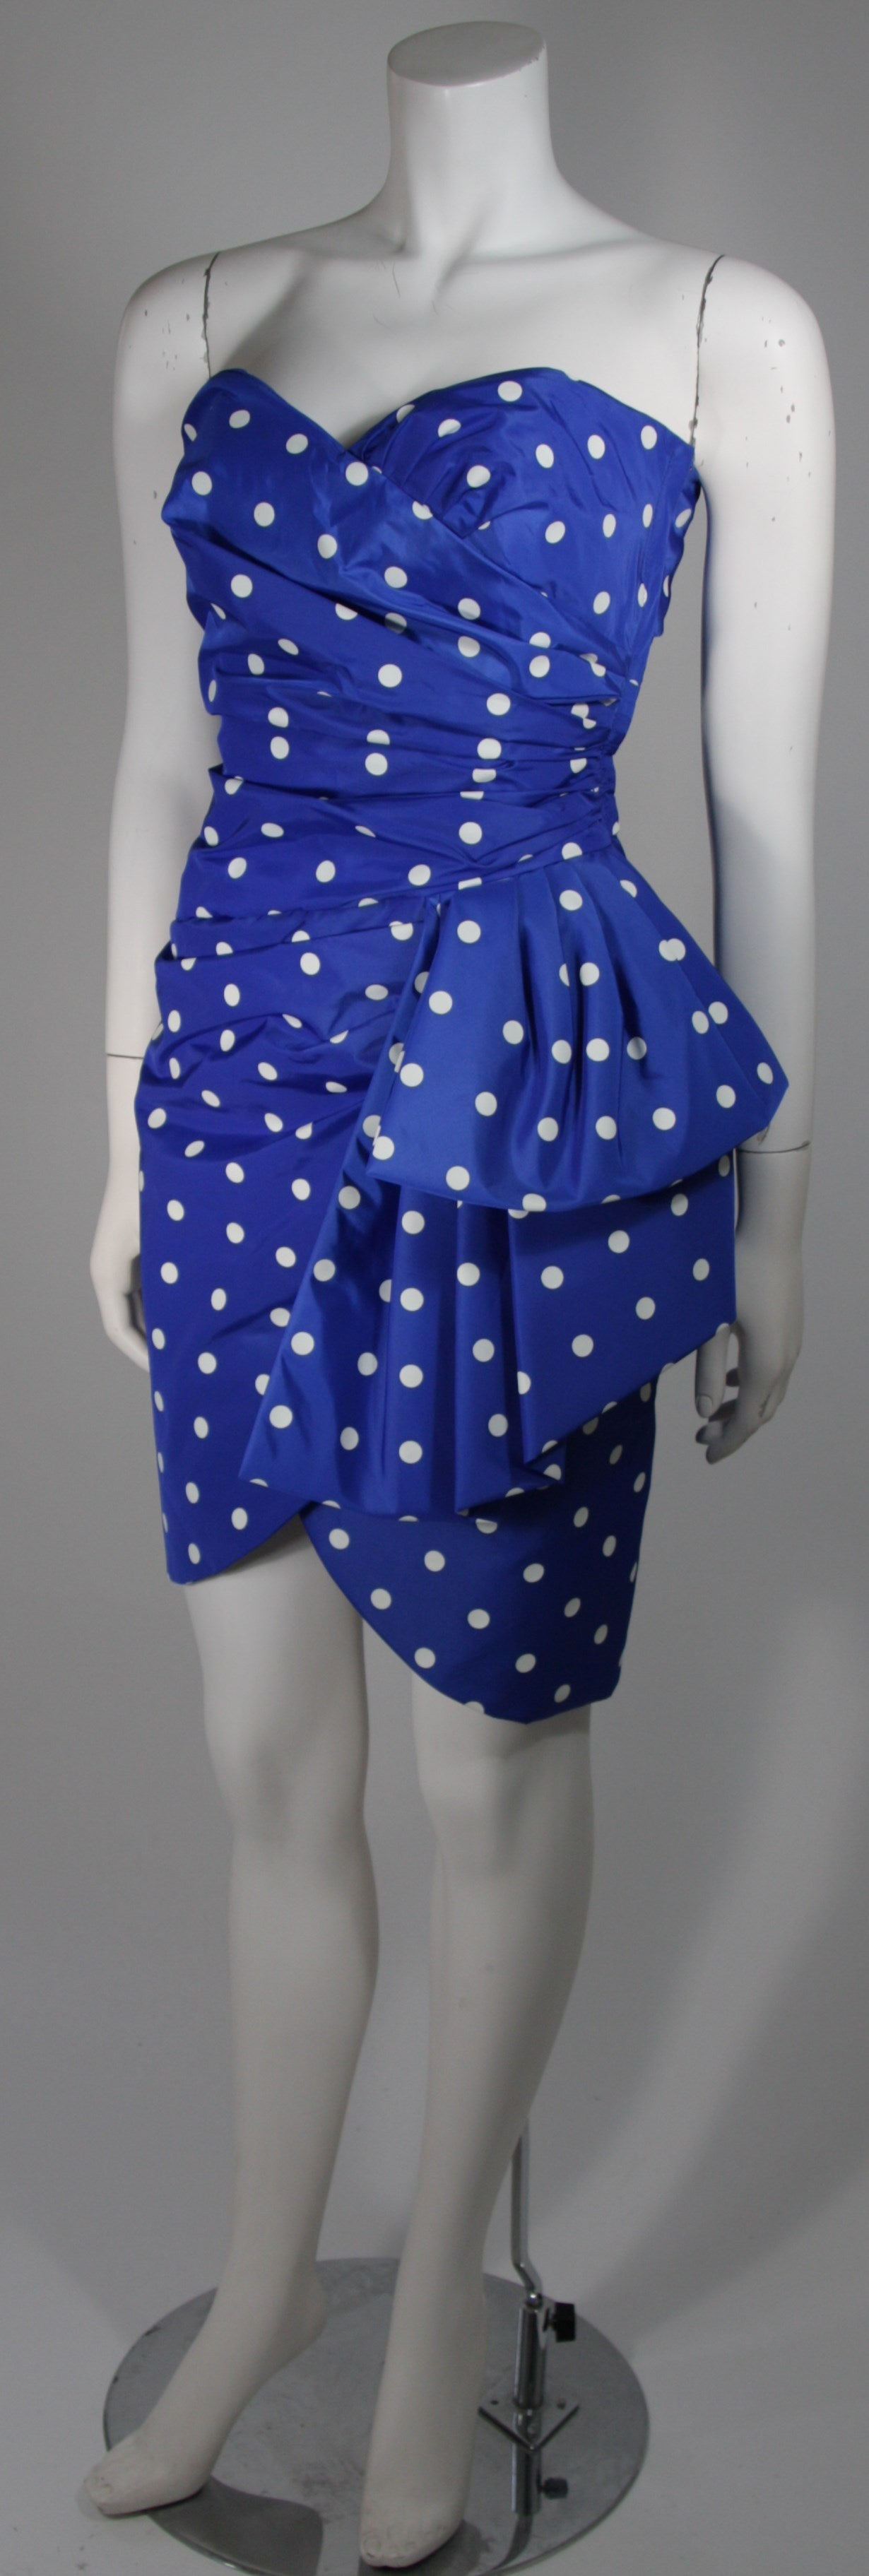 Victor Costa Royal Blue and White Polka Dot Cocktail Dress Size 8 In Excellent Condition For Sale In Los Angeles, CA